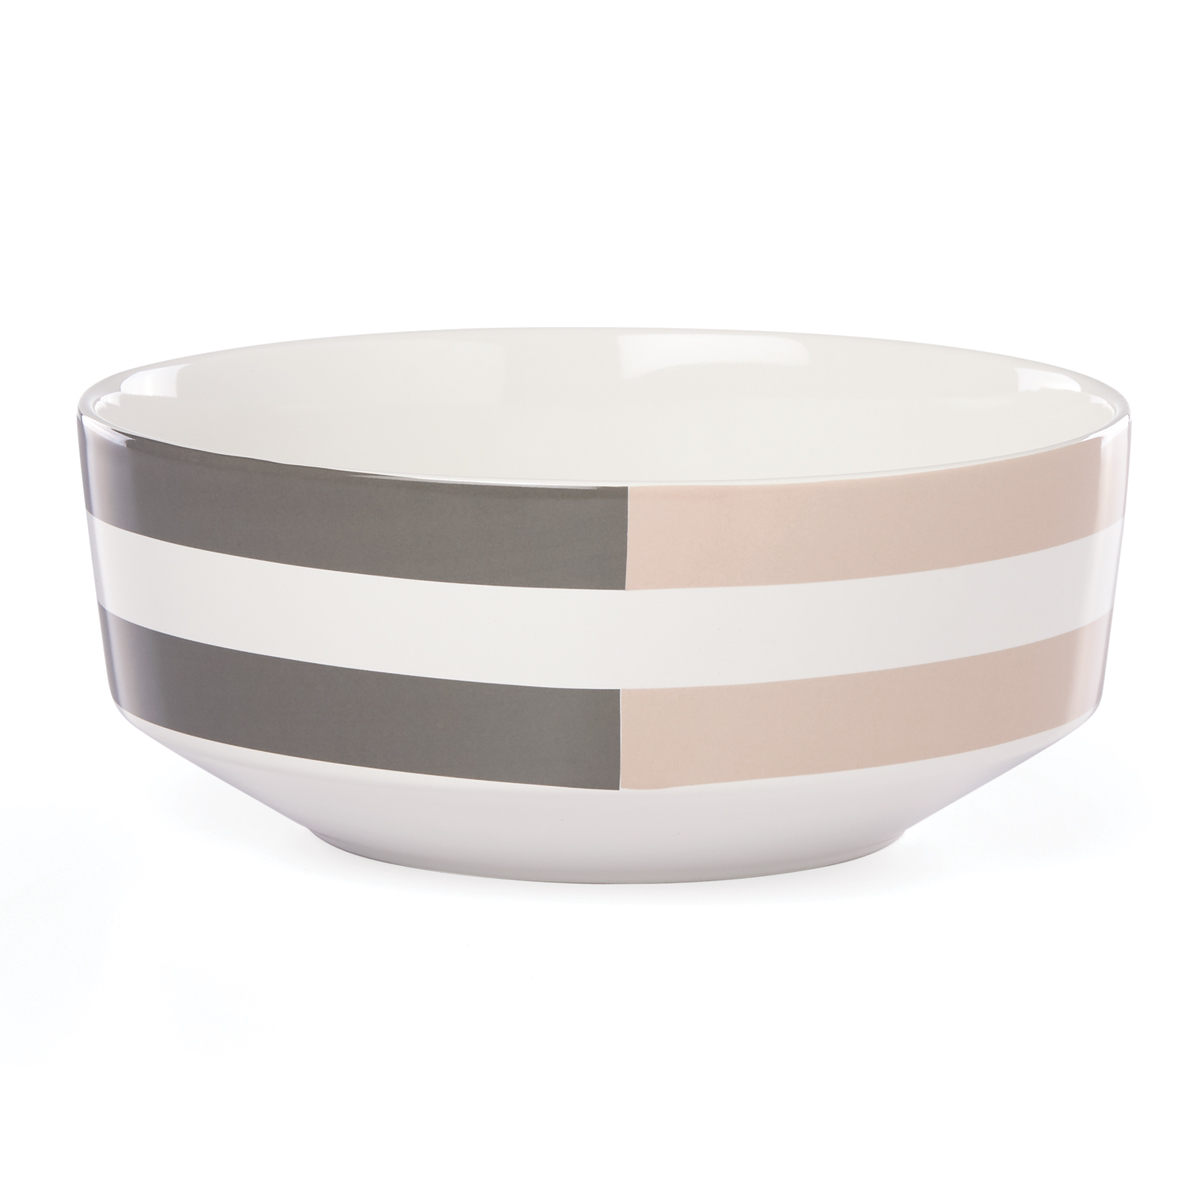 Kate Spade China by Lenox, Stoneware Nolita Gray Serving Bowl